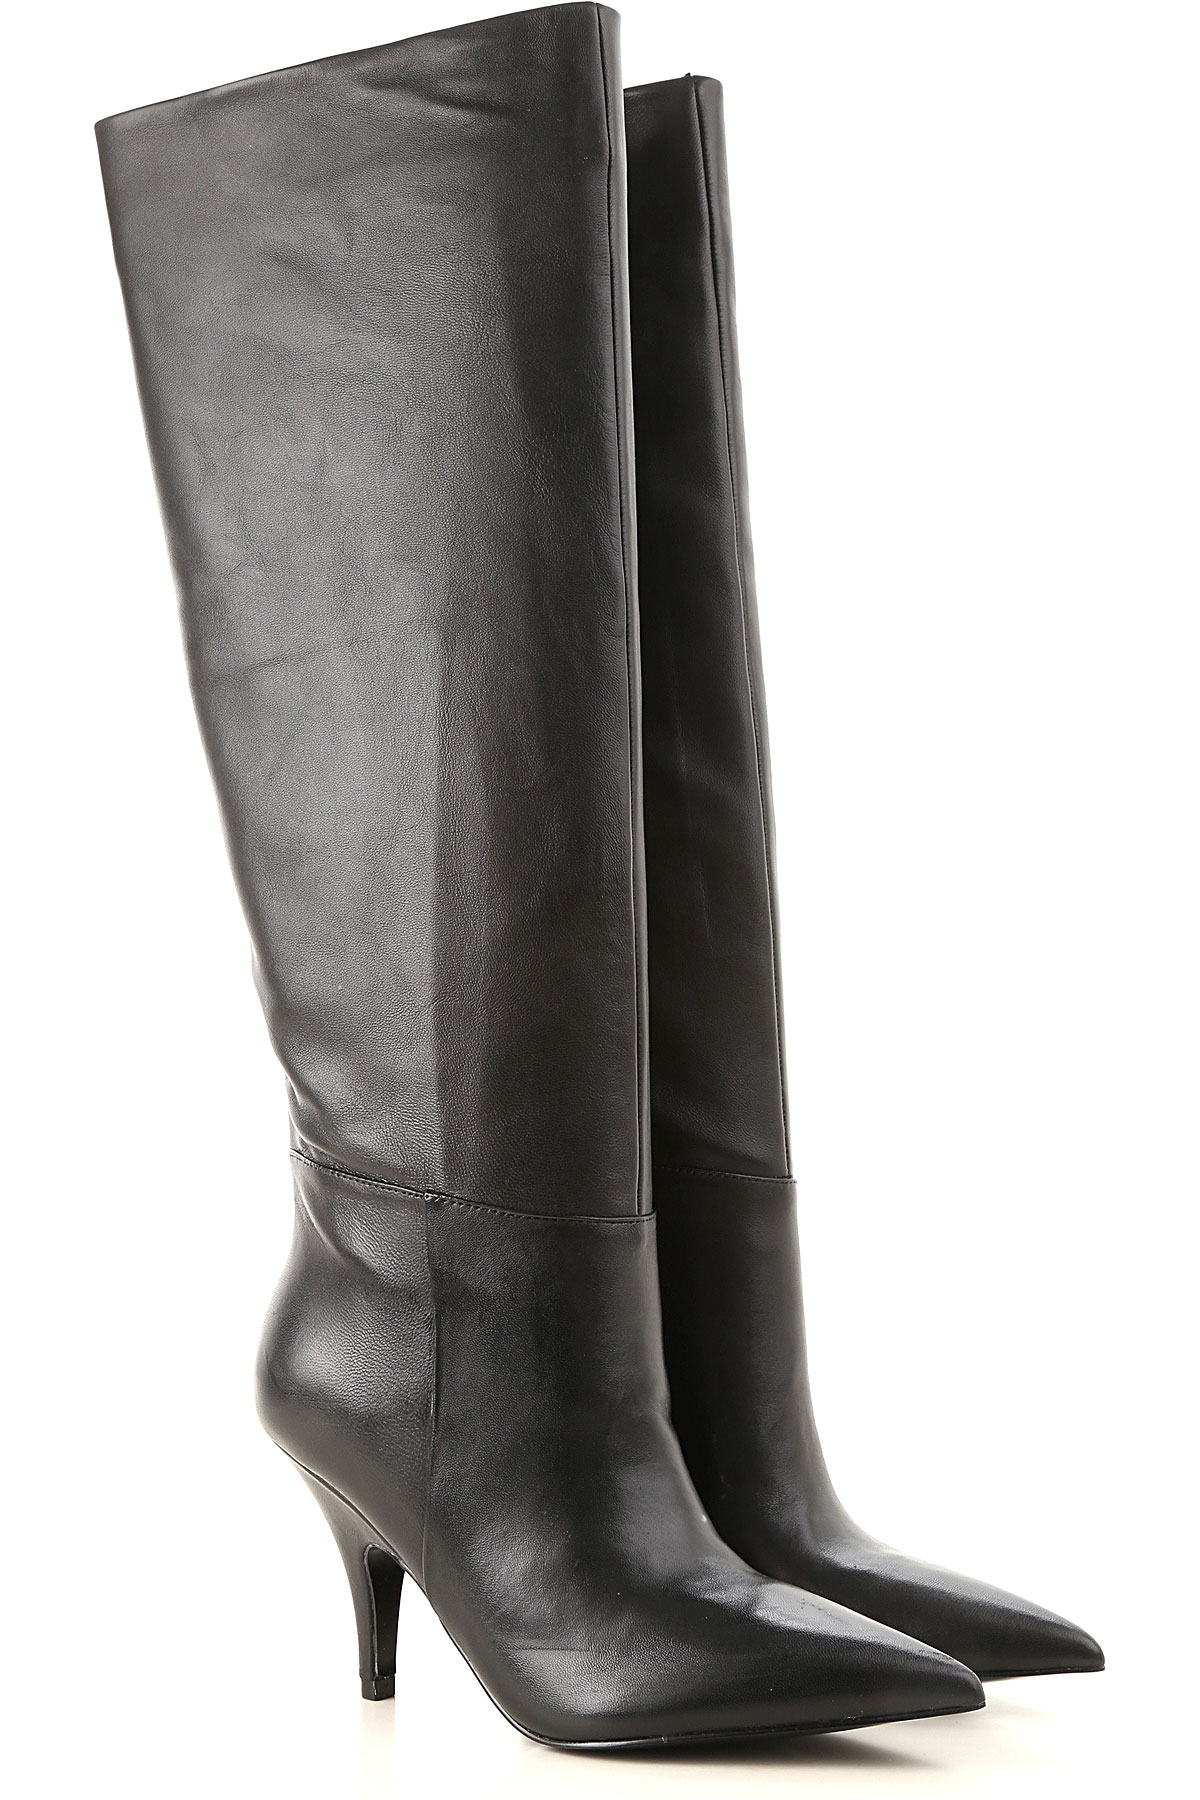 Kendall Kylie Boots for Women, Booties On Sale in Outlet, Black, Leather, 2019, 6 7 8